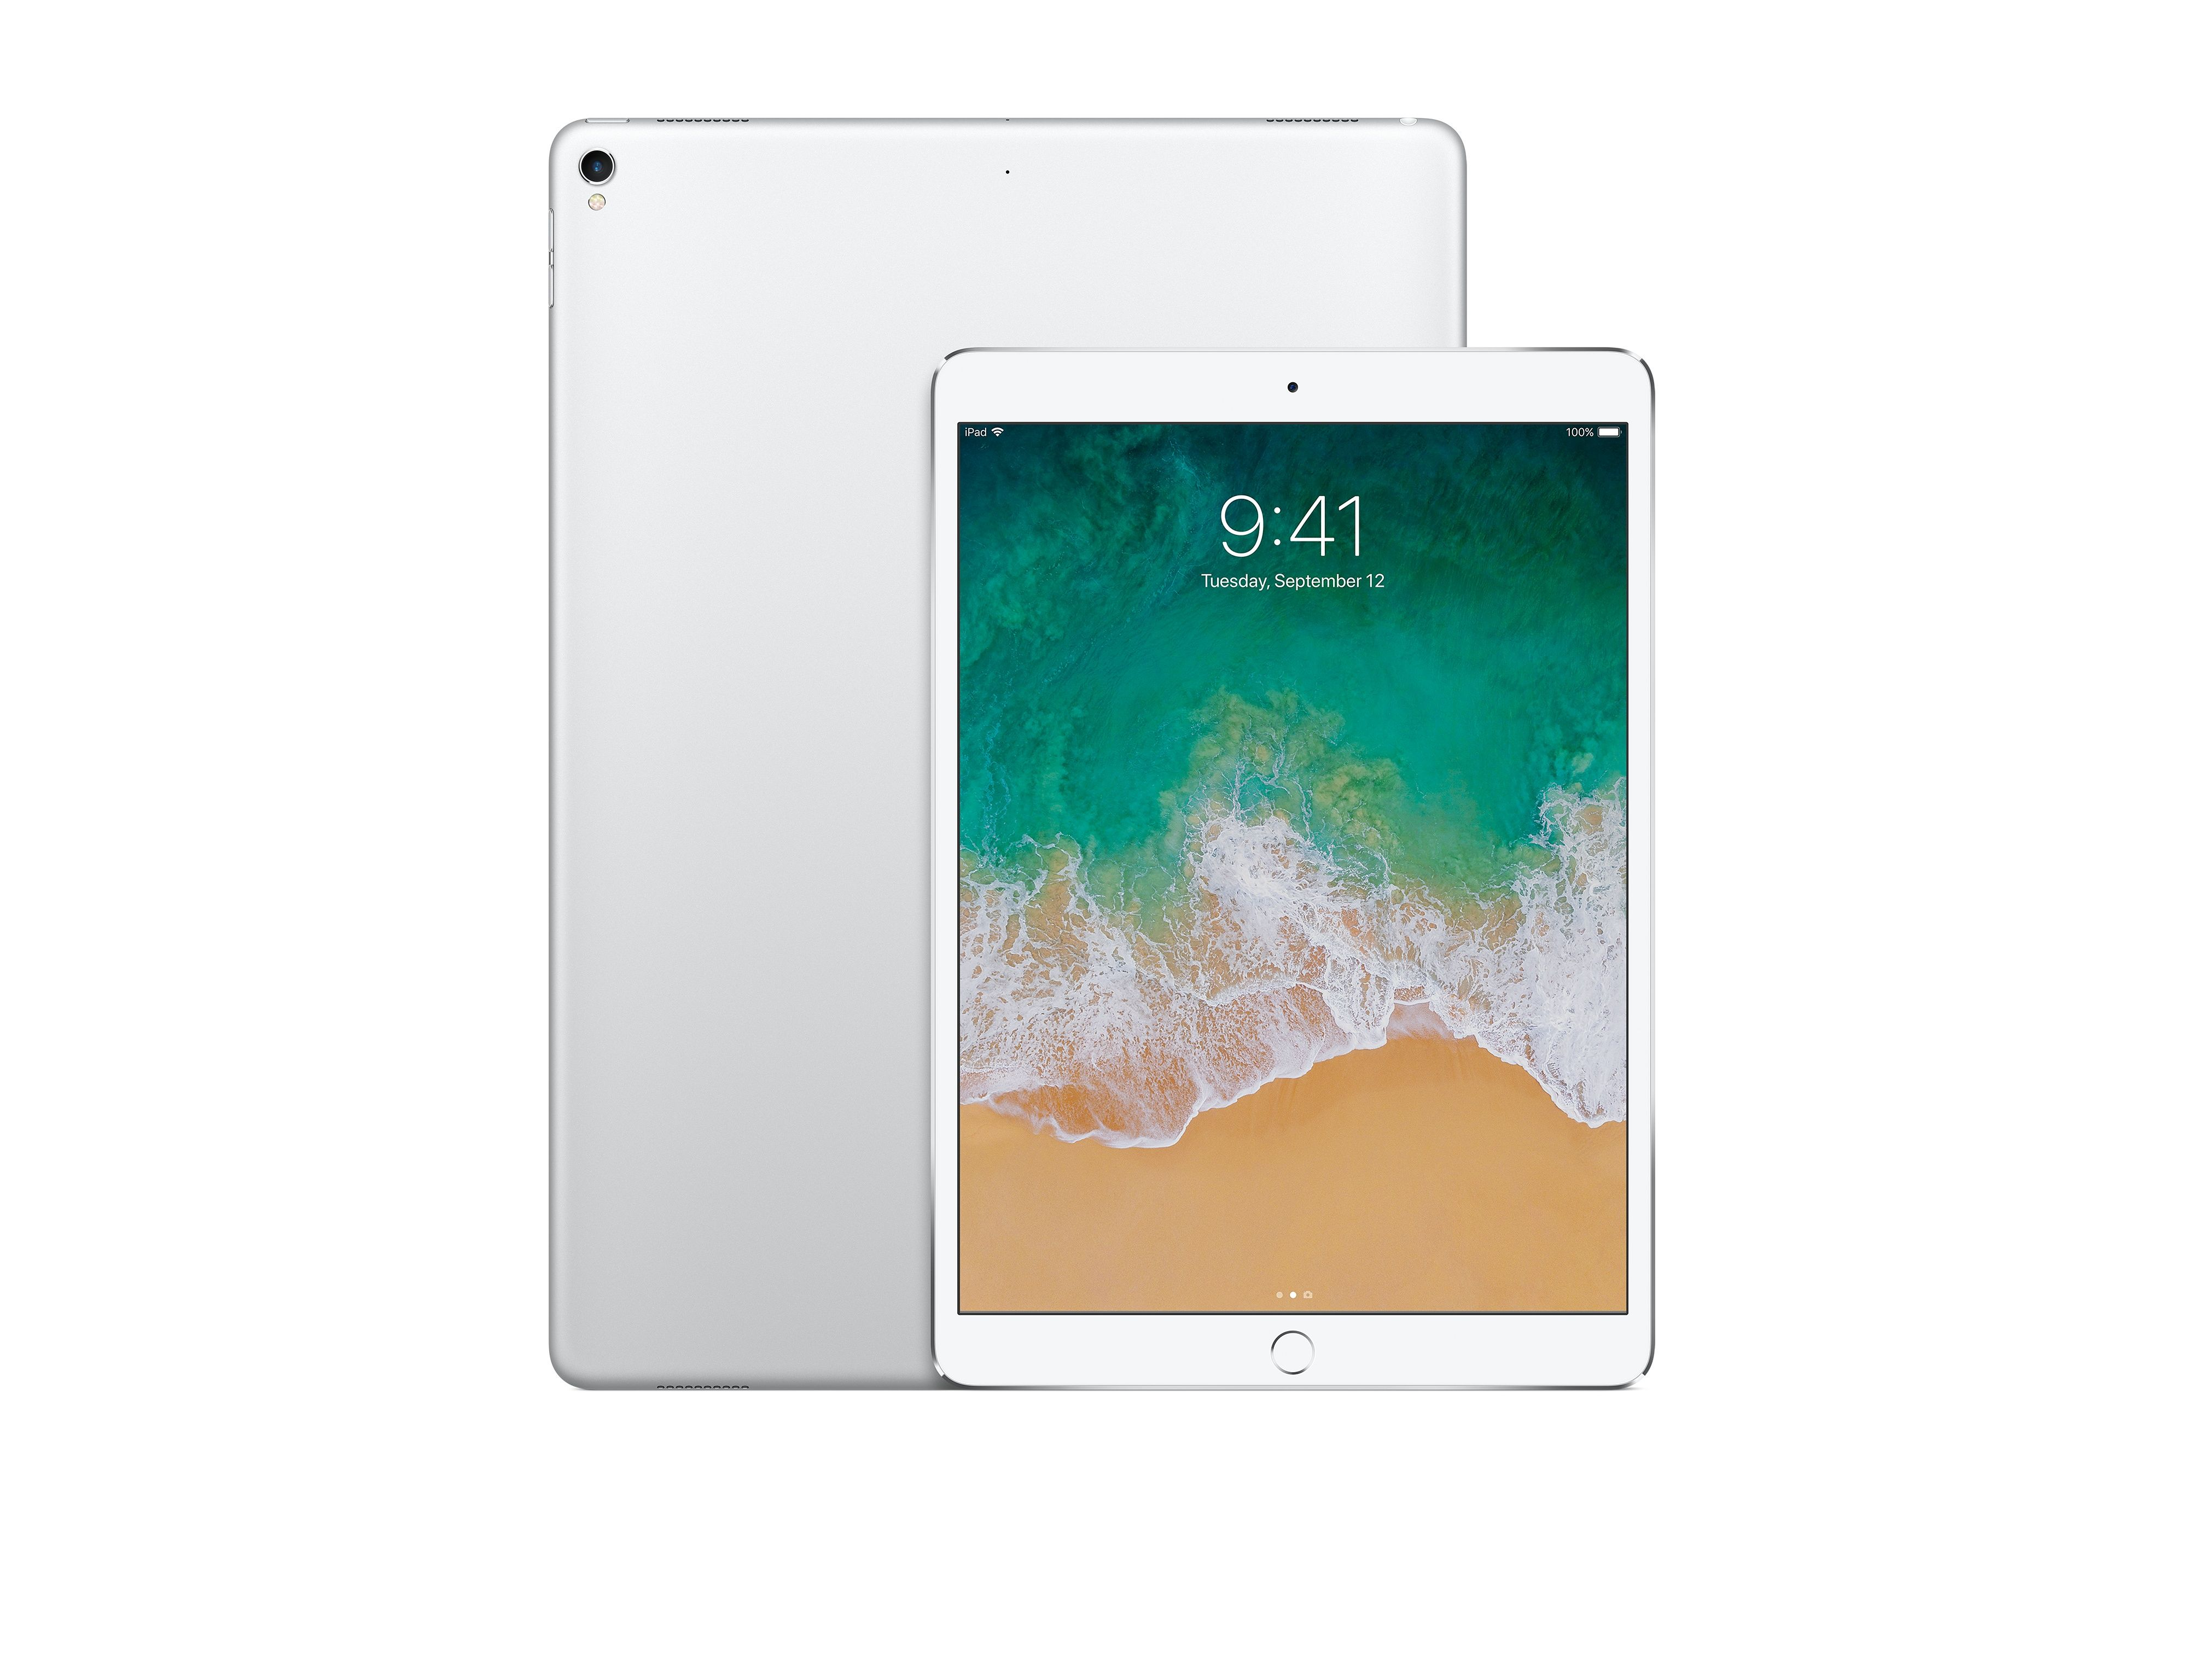 12 9 Inch Ipad Pro Wi Fi 512gb Gold Education Apple Ipad Pro Ipad New Ipad Pro